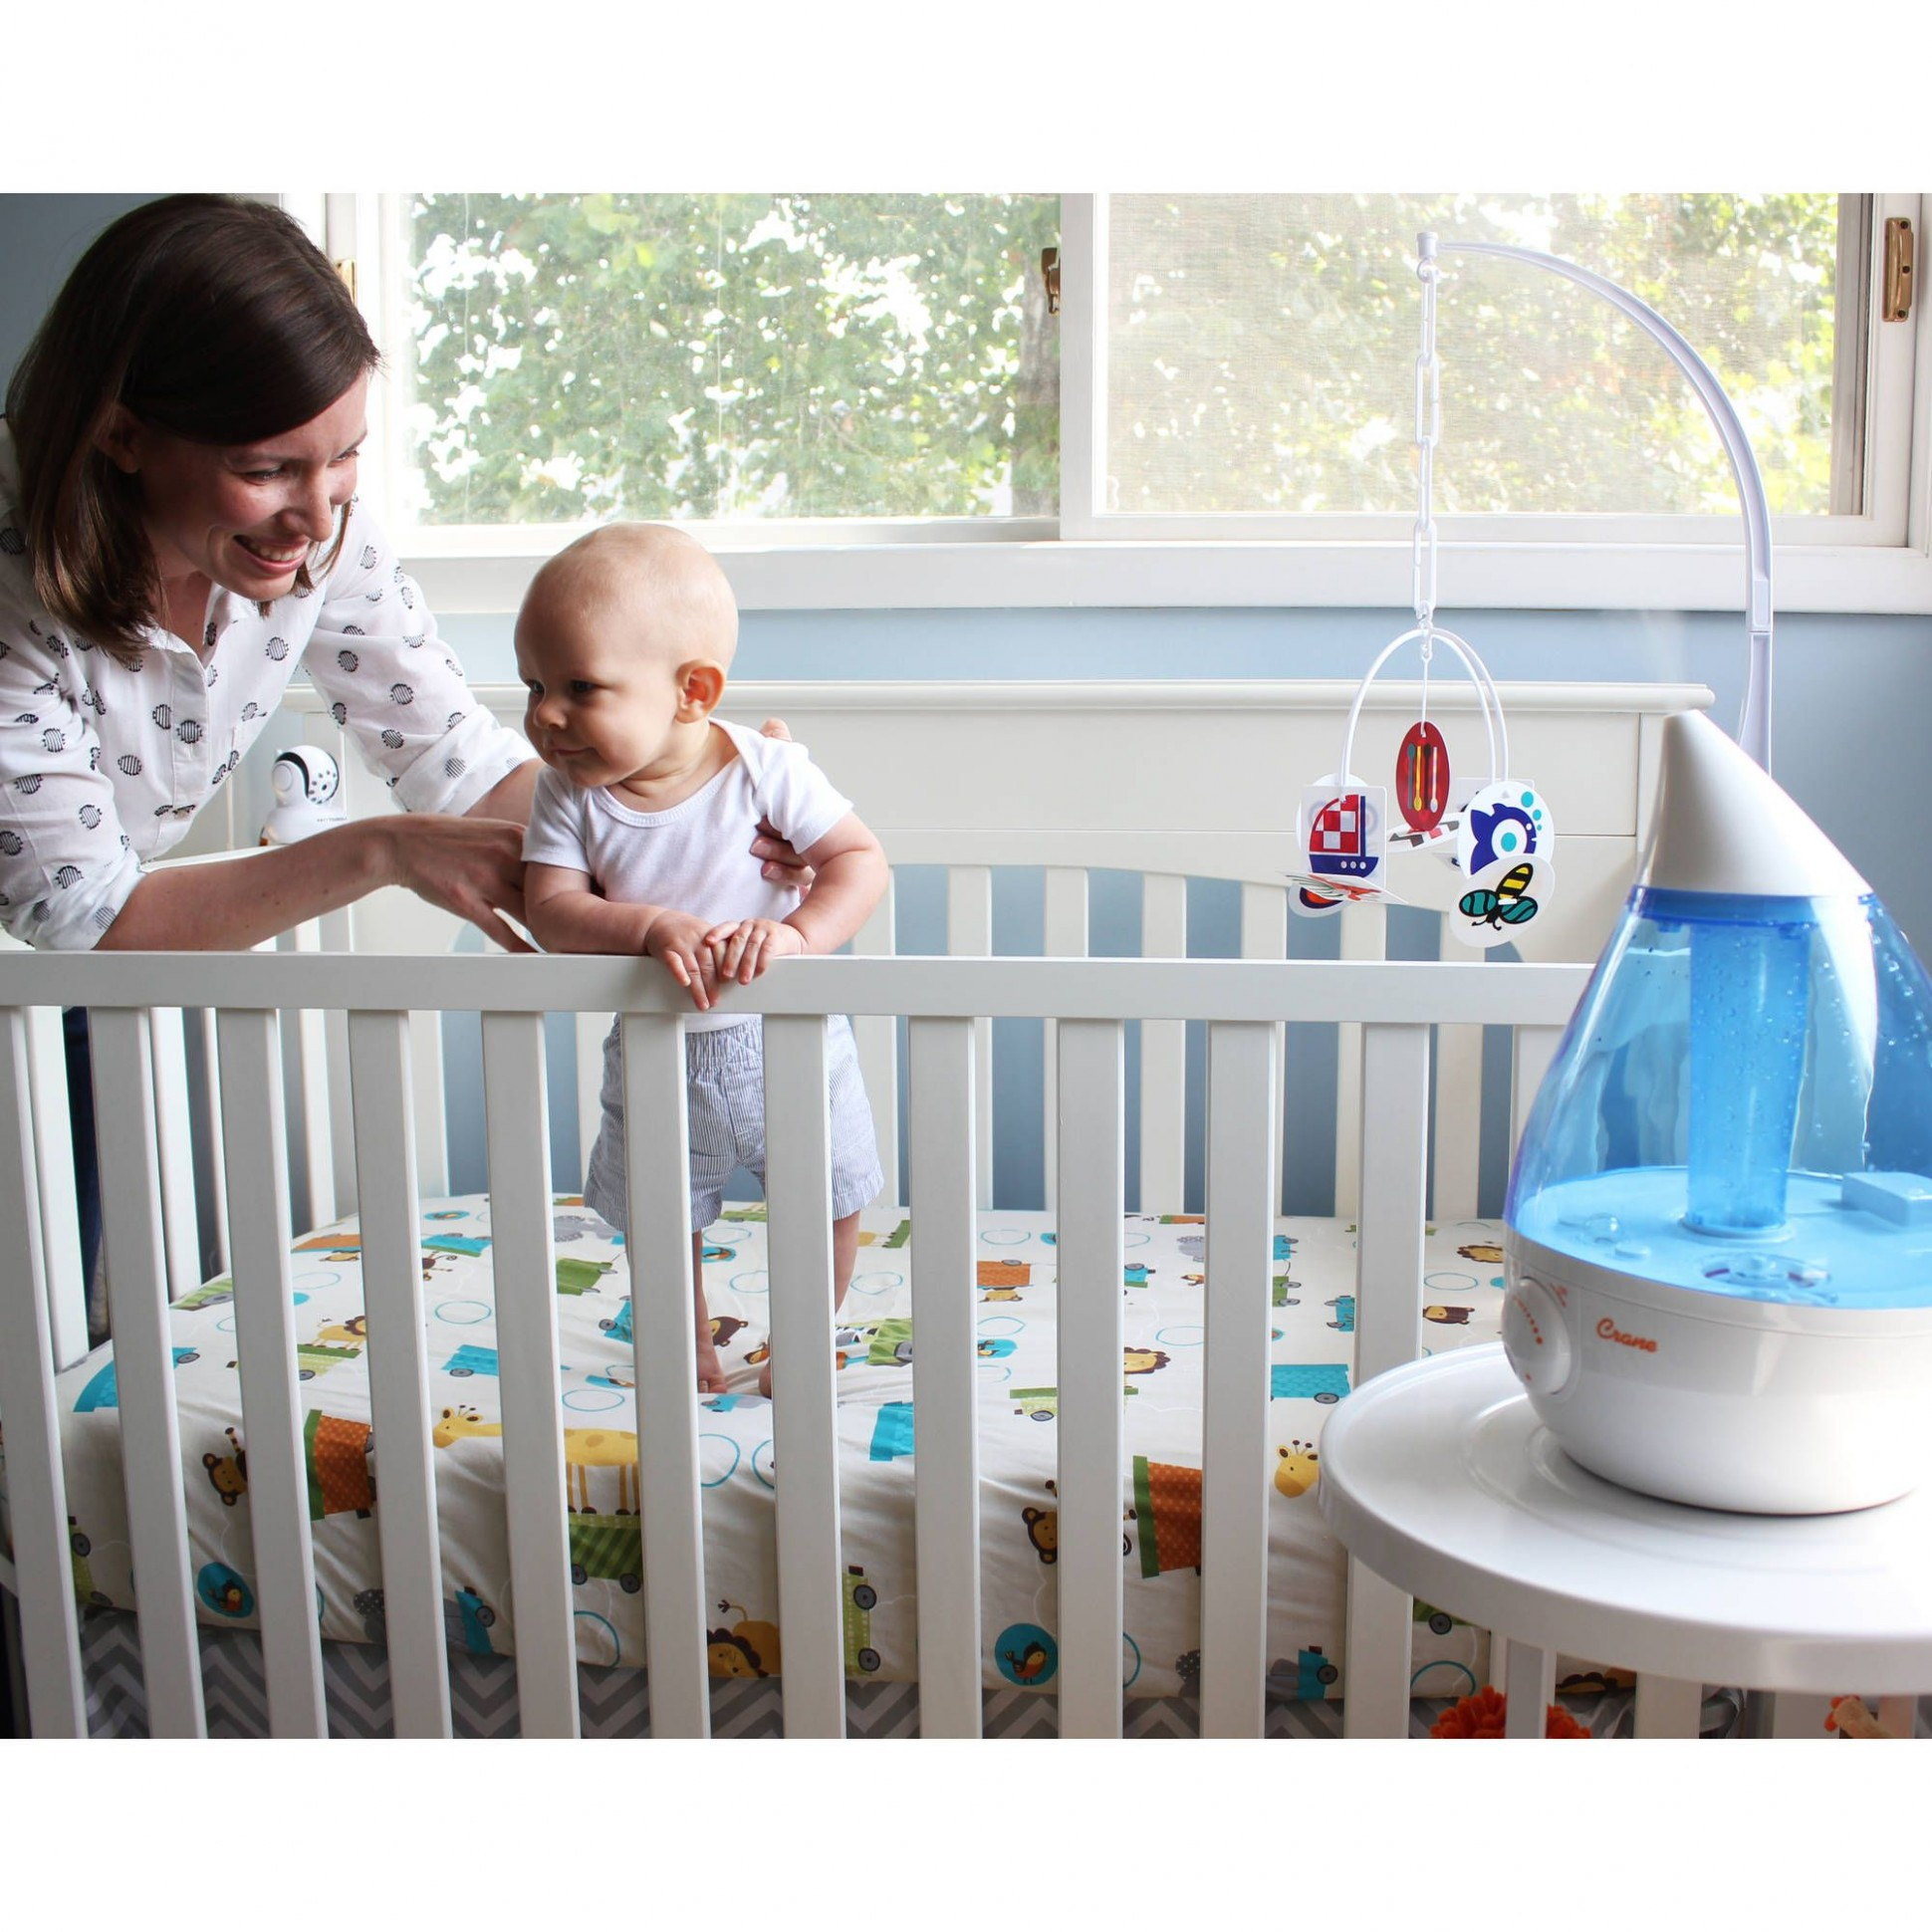 The 10 Best Humidifiers for Babies of 10 - Baby Room Humidity